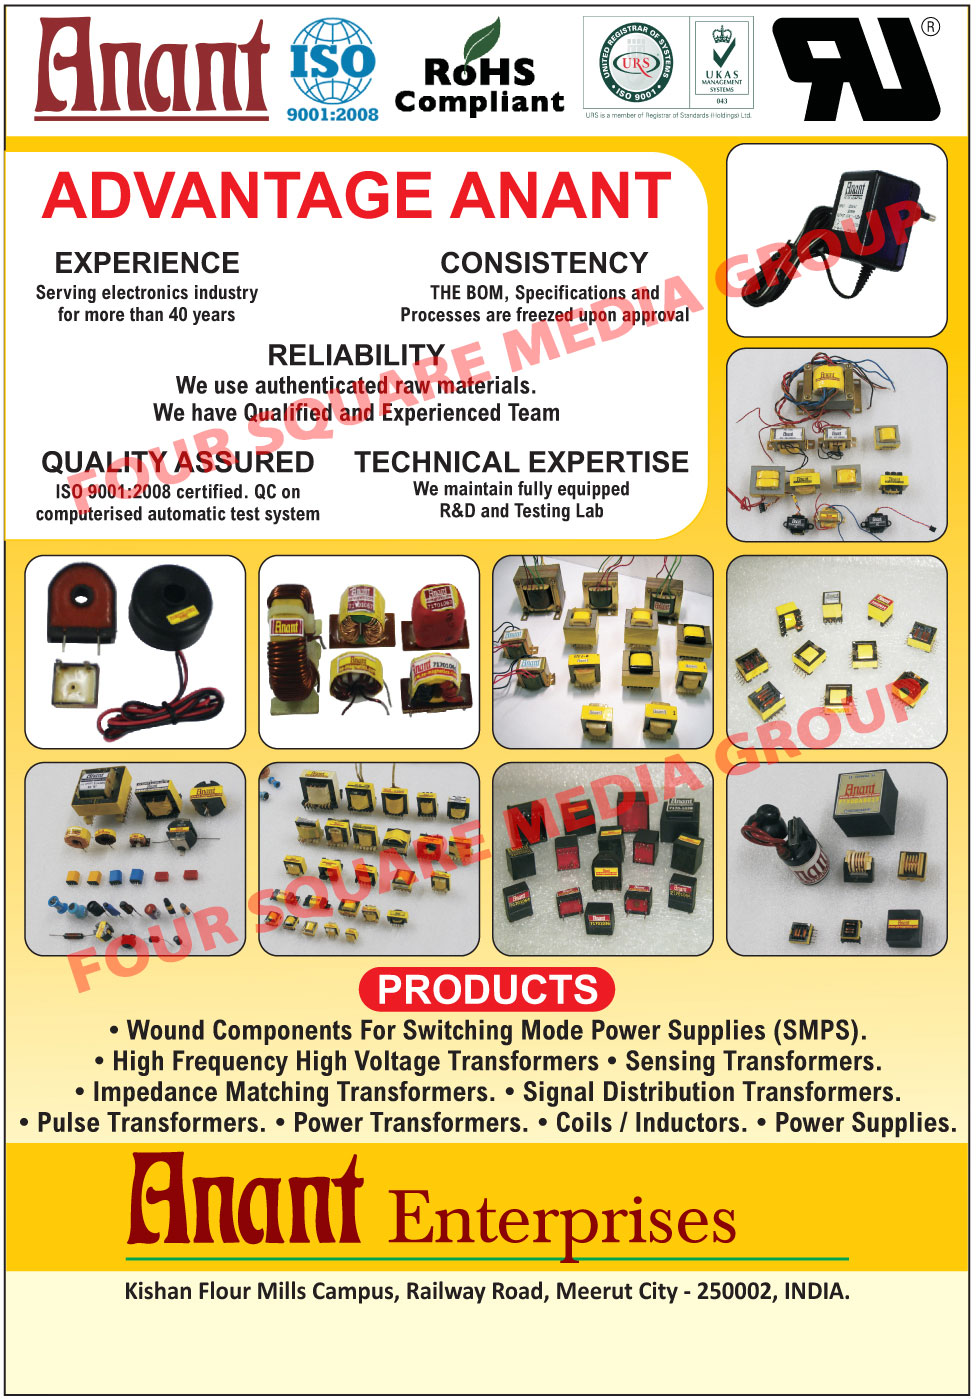 Wound Components For Switching Mode Power Supplies, Wound Components For SMPS, High Voltage Transformers, Sensing Transformers, Impedance Matching Transformers, Signal Distribution Transformers, Pulse Transformers, Power Transformers, Coils, Inductors, Power Supplies